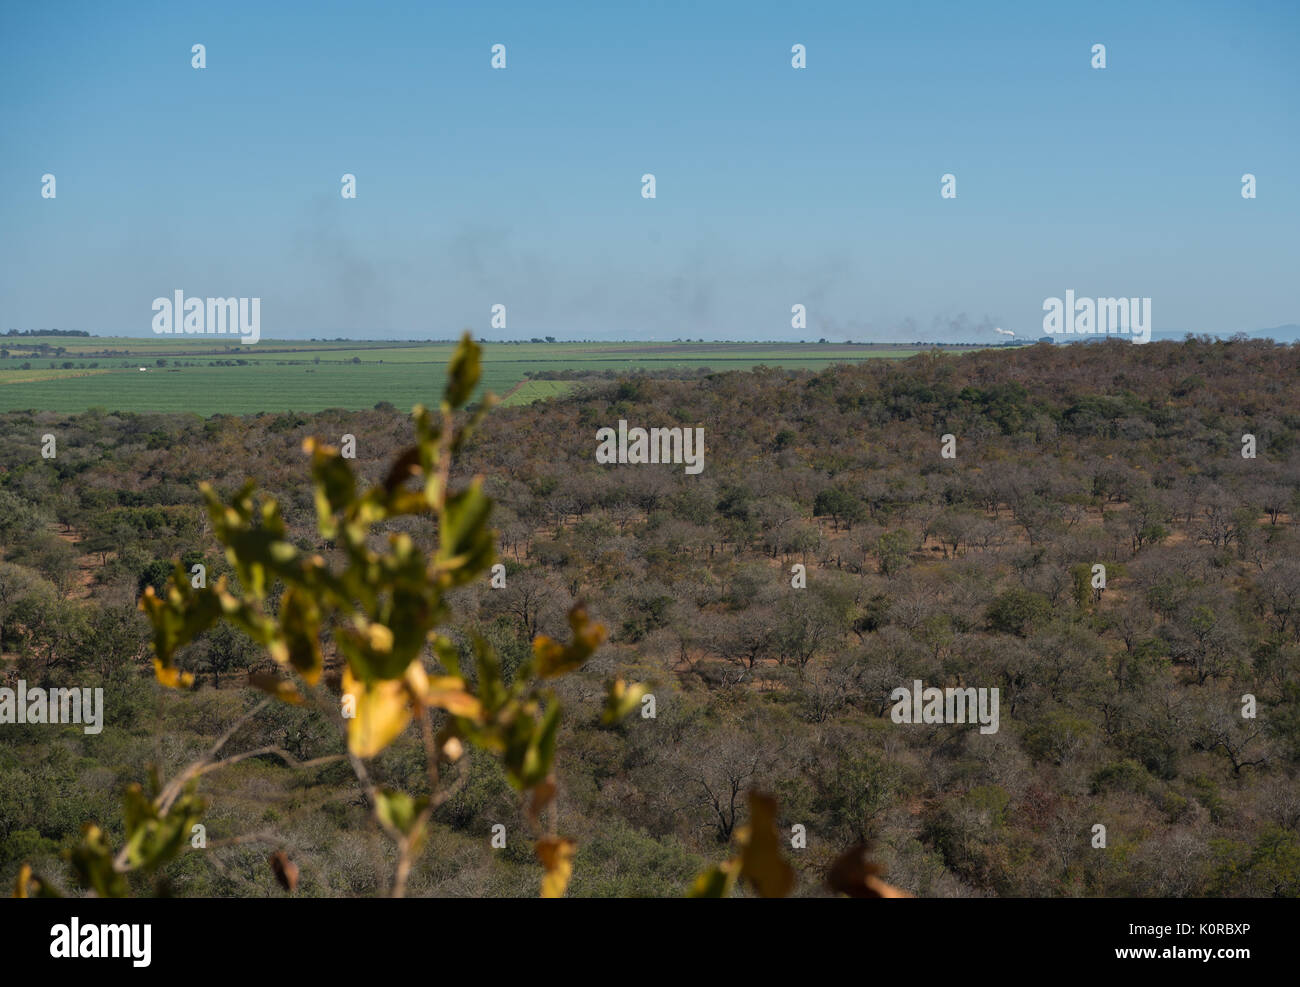 View showing private game reserve bordered by sugar cane fields - Stock Image